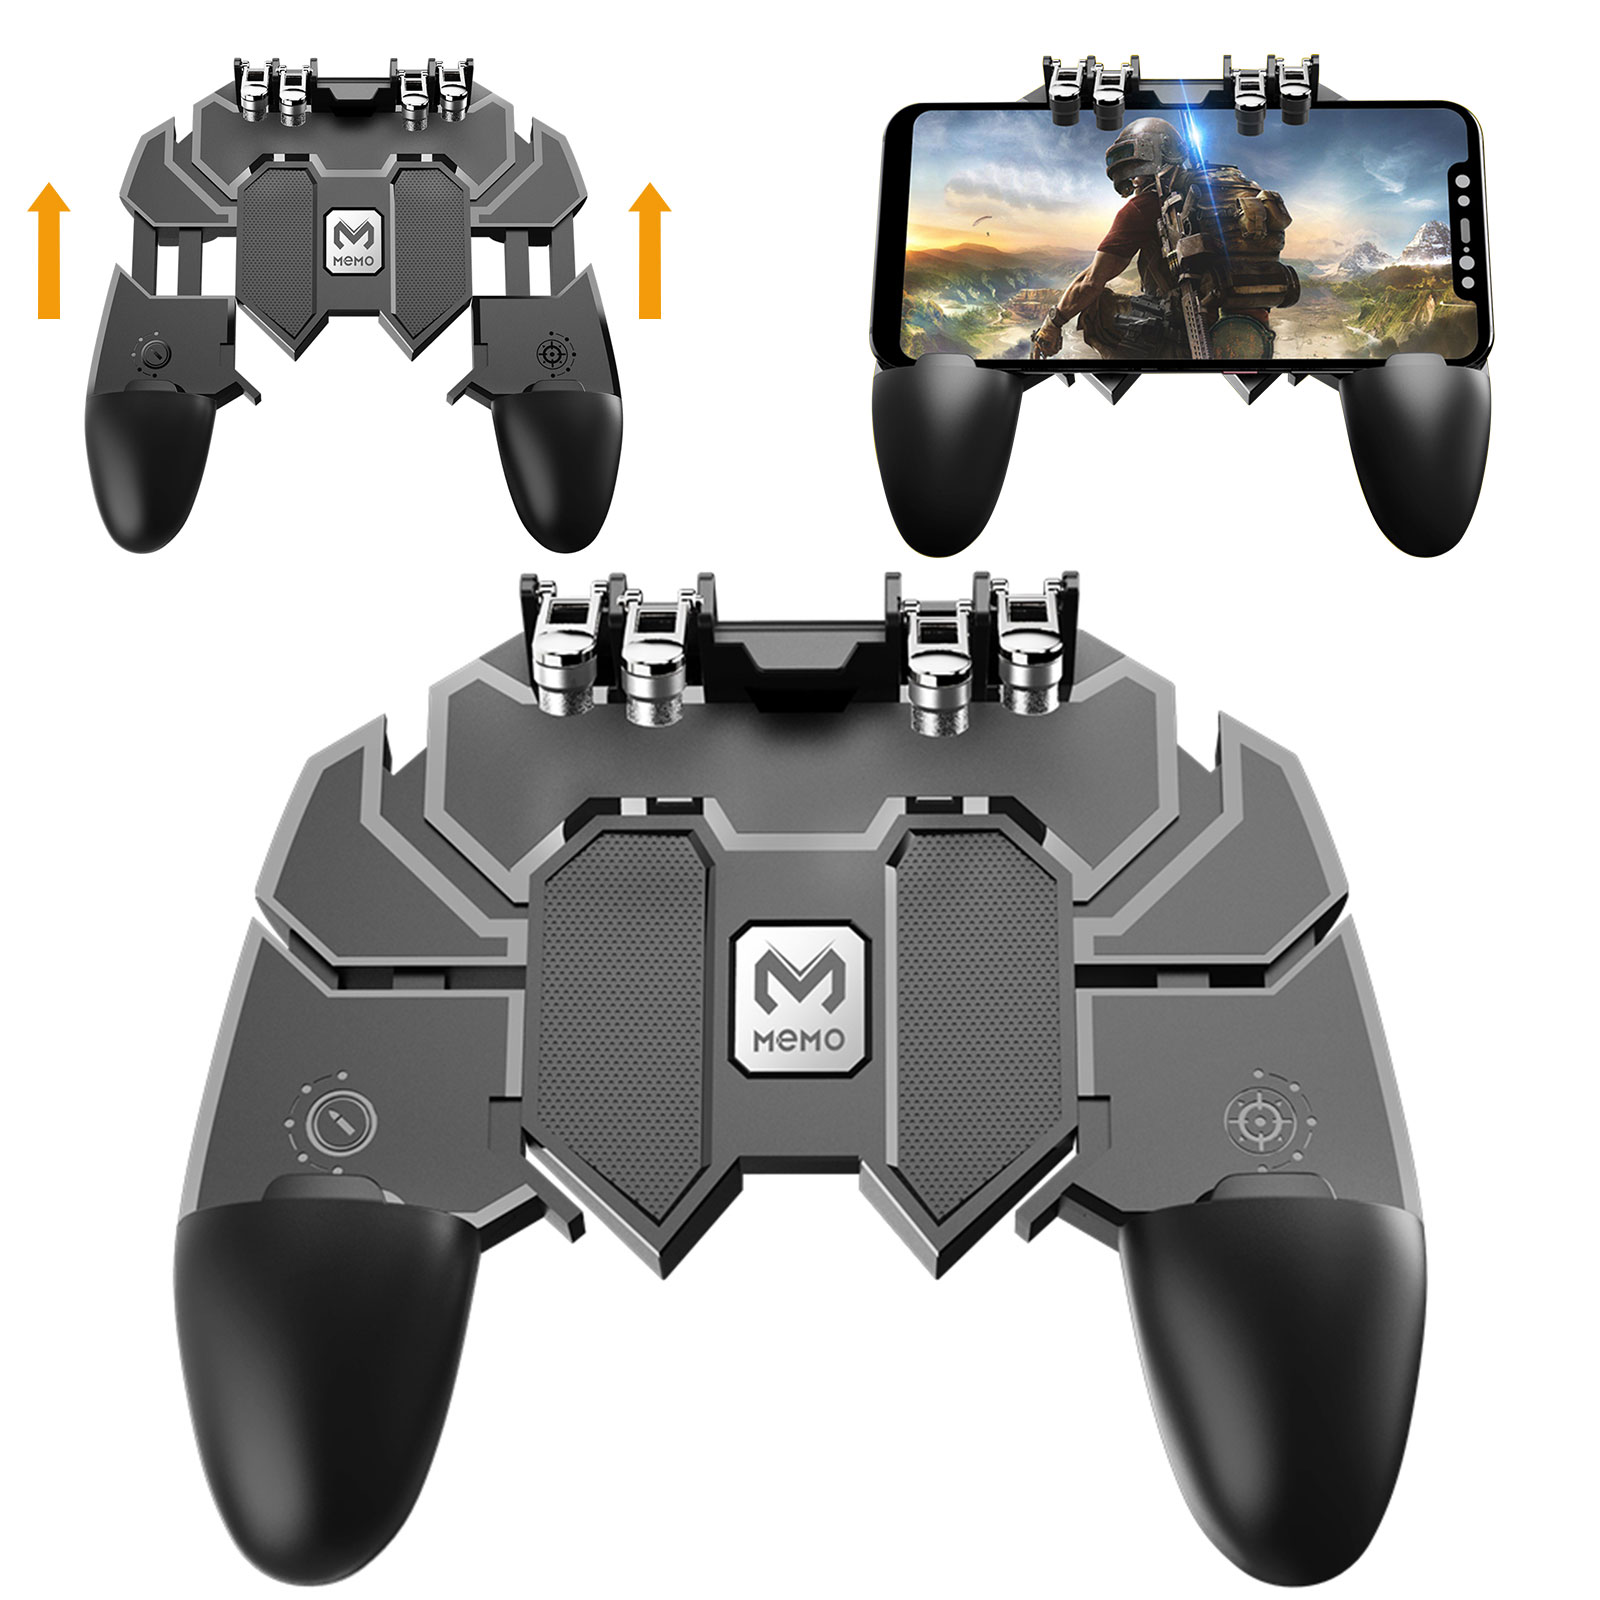 Freckle AK66 Mobiles Phone Game Controller Shooter Gamepad Fire Button With Mini Magnetic Car Dashboard Mount Mobile Holder.